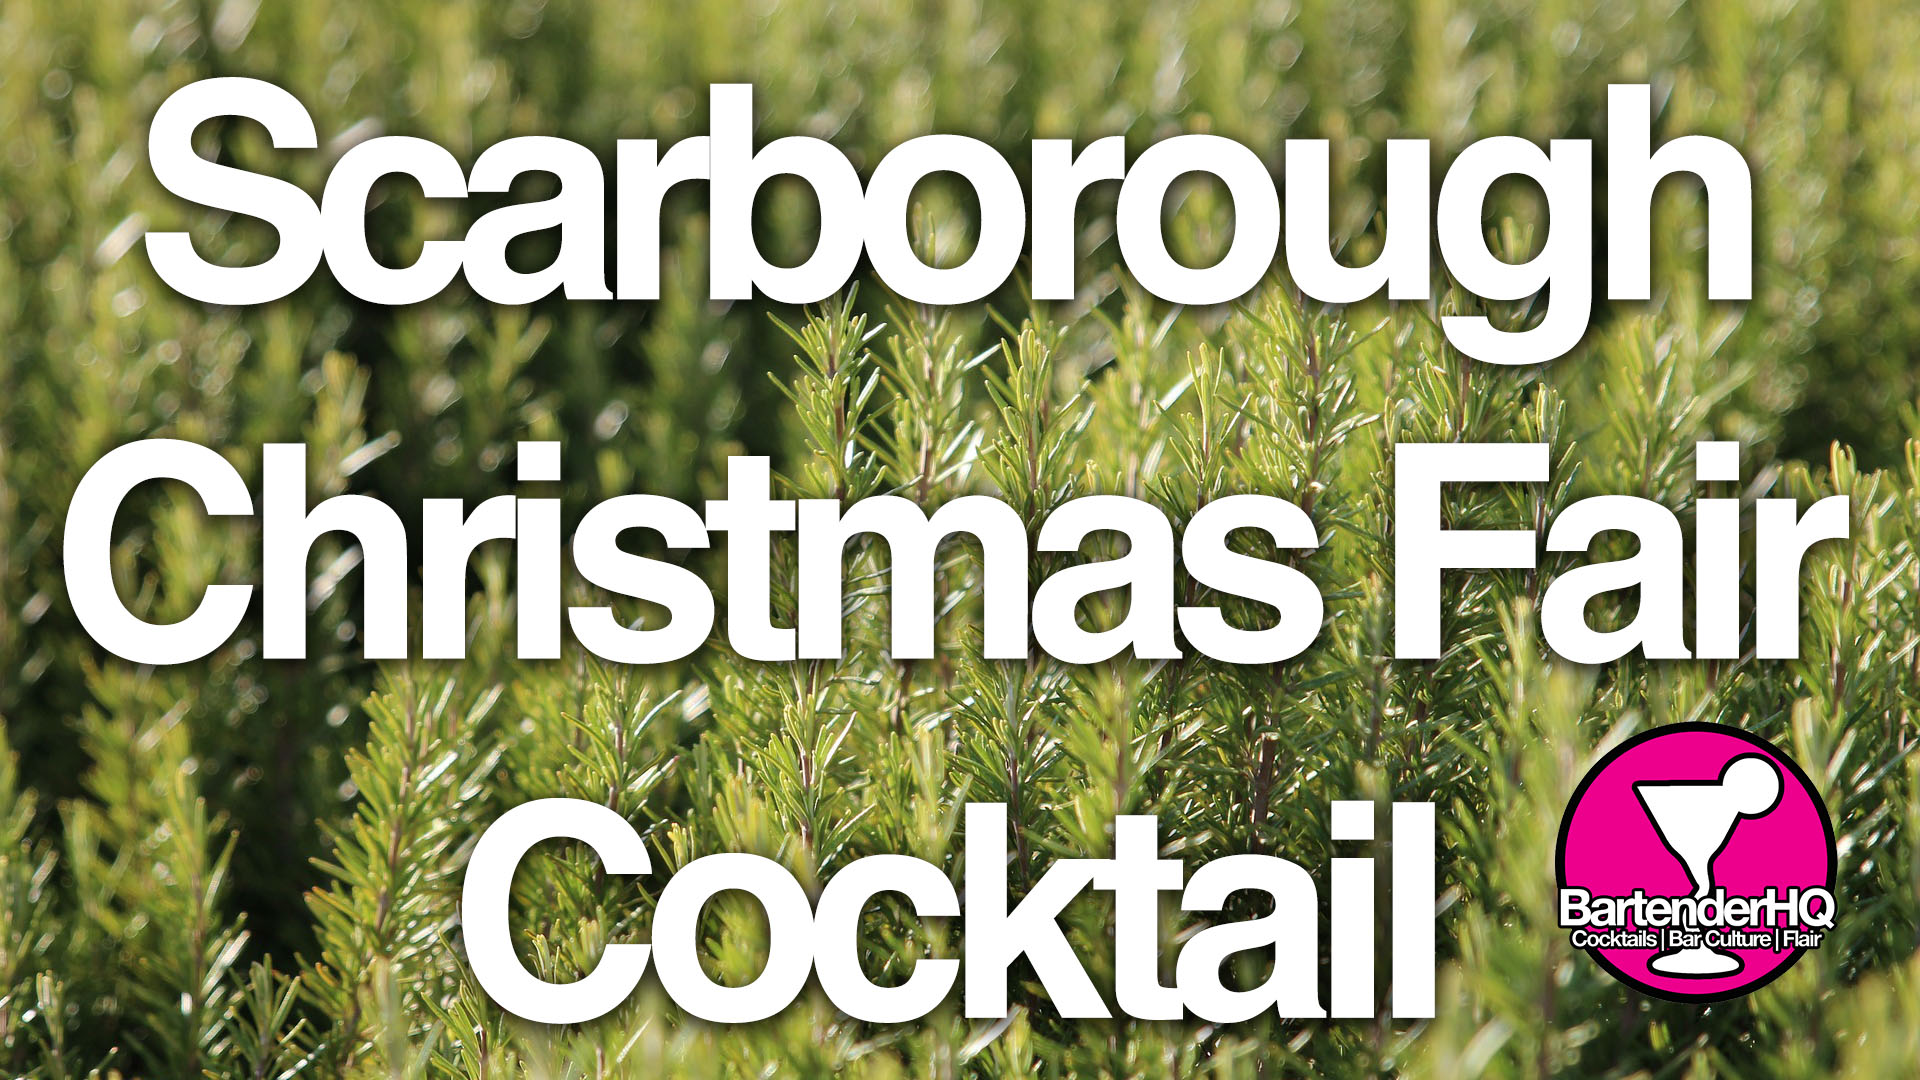 scarborough-fair-cocktail